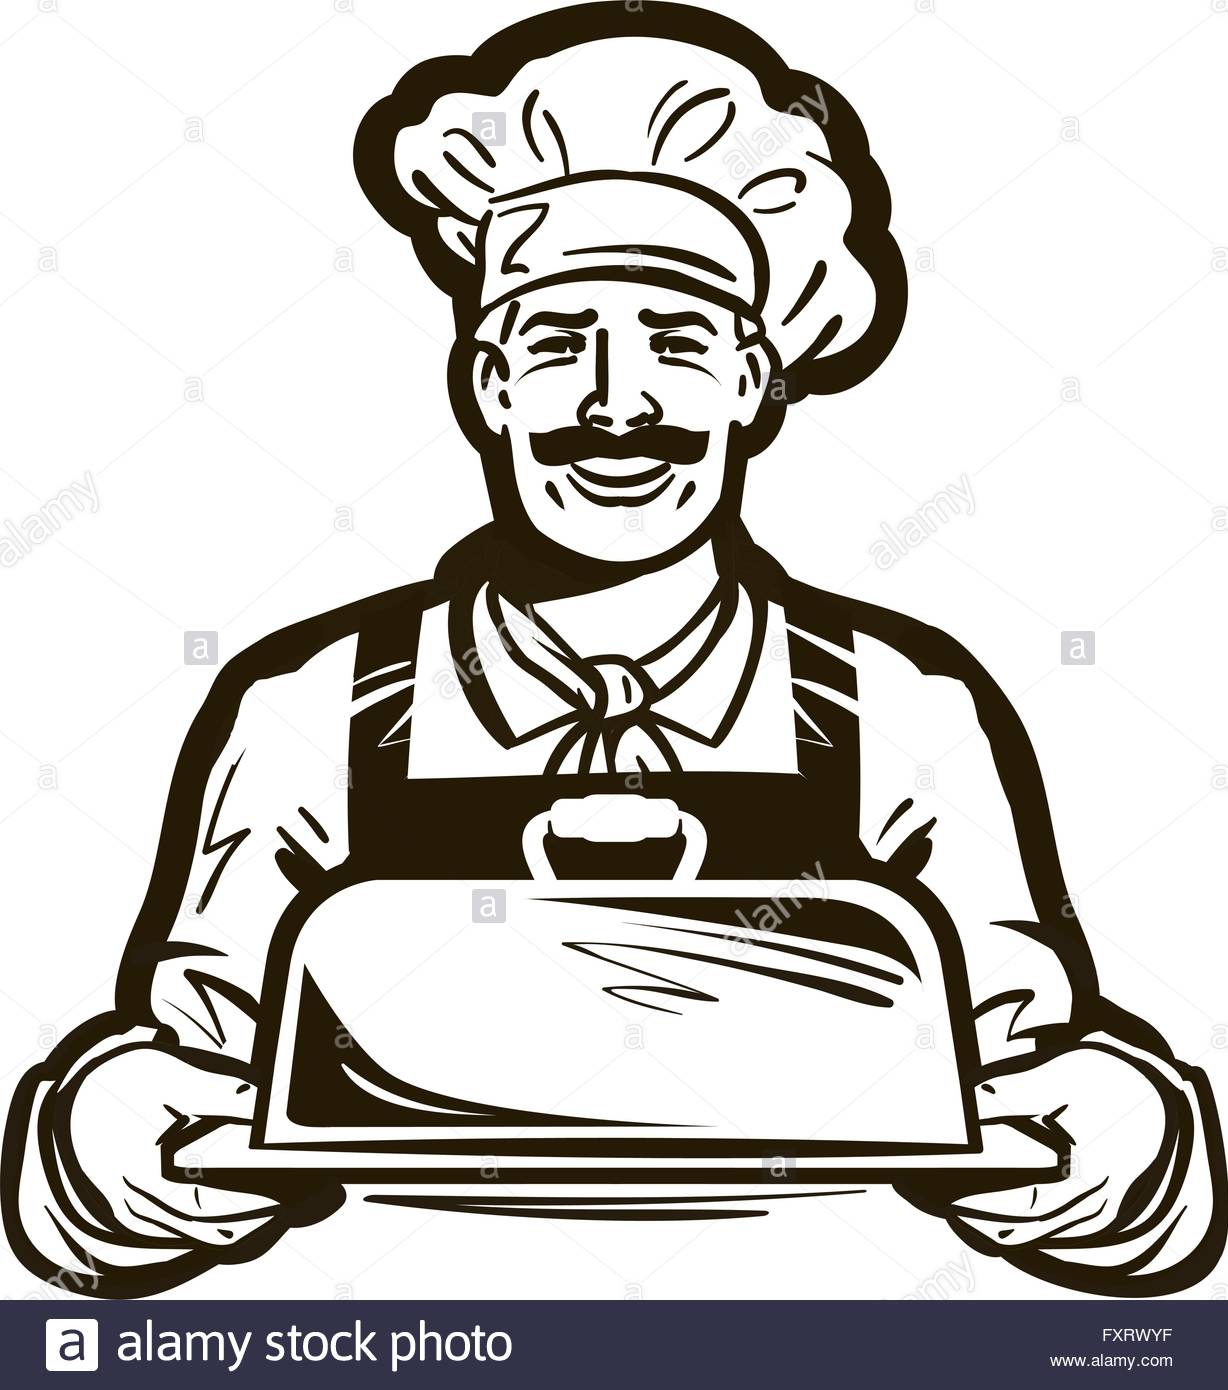 1228x1390 Drawing Of A Chef With Hat And Hot Plate Tray. Hand Drawn Vector